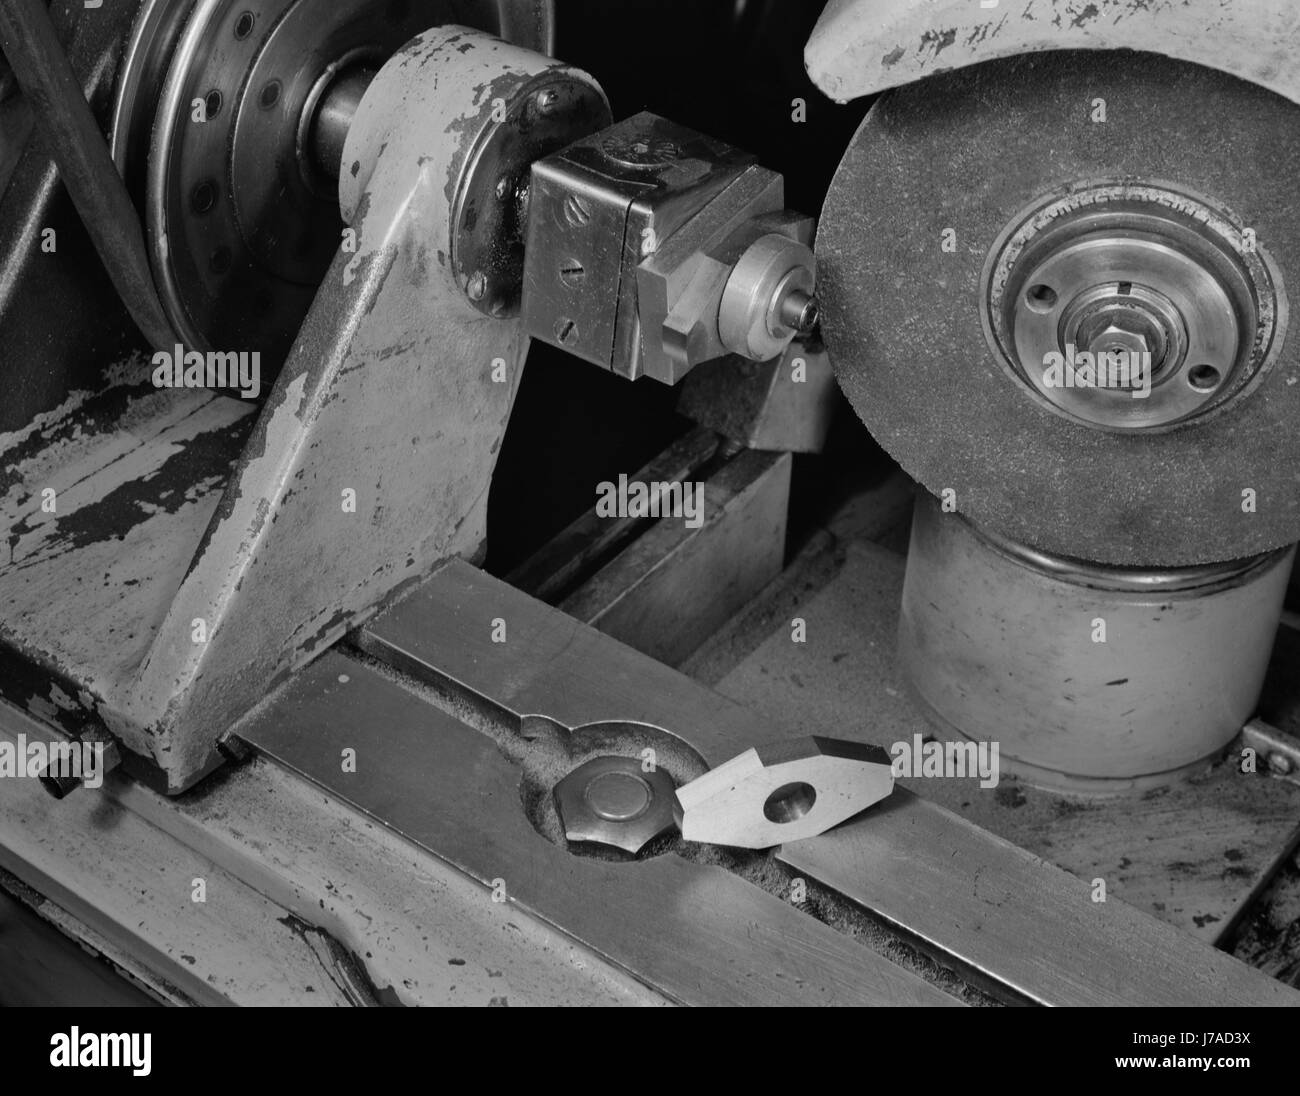 A Norton cutter-grinder converted to grind magnet rotors for machine tools, 1942. - Stock Image